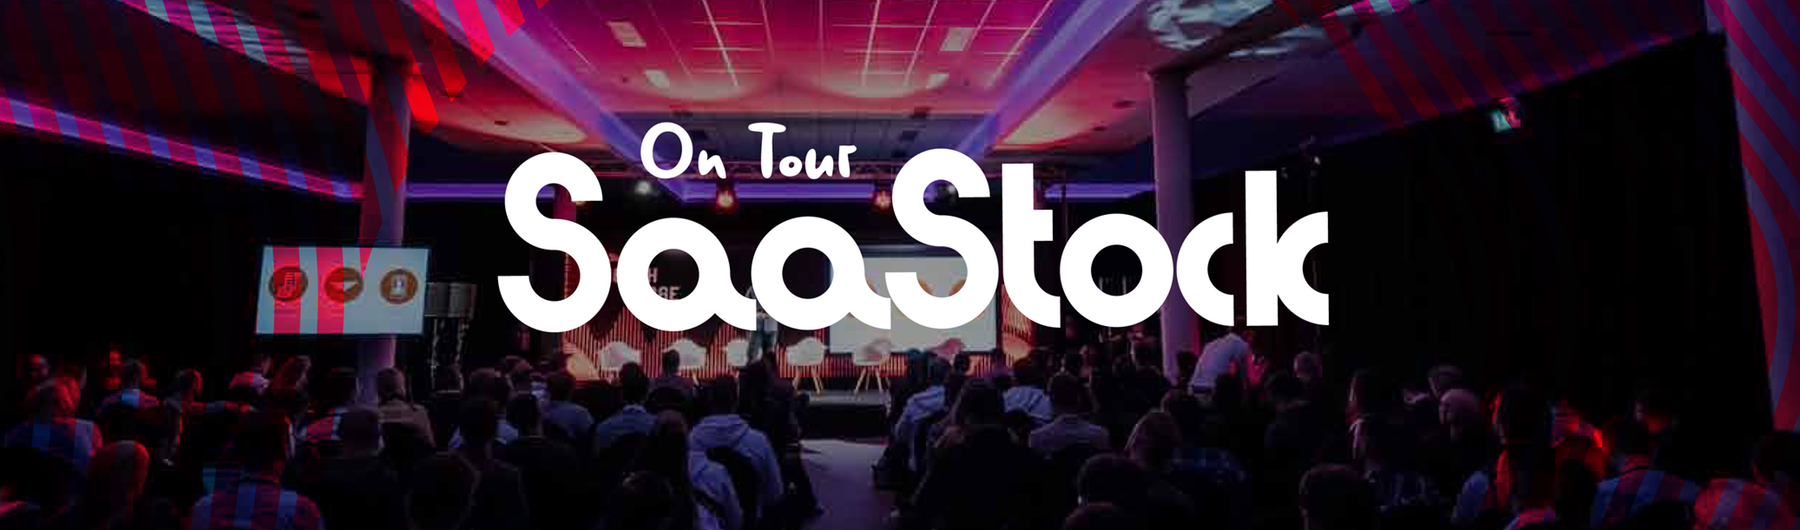 SaaStock On Tour Helsinki 2018